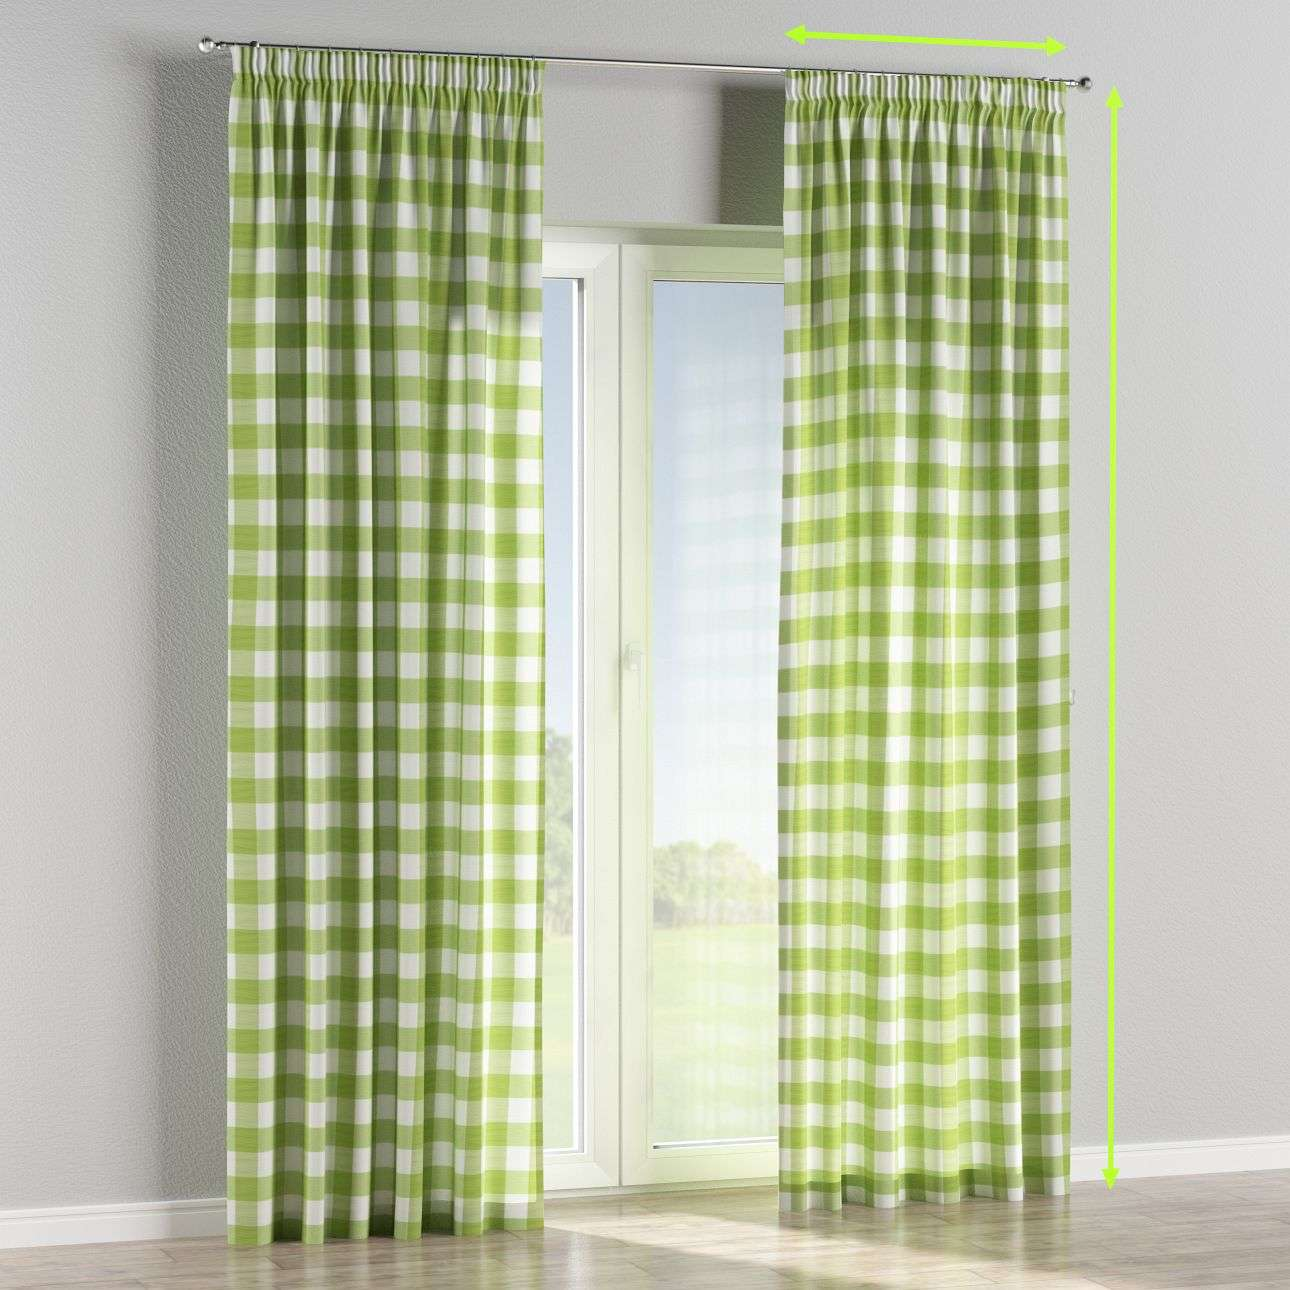 Pencil pleat curtains in collection Quadro, fabric: 136-36